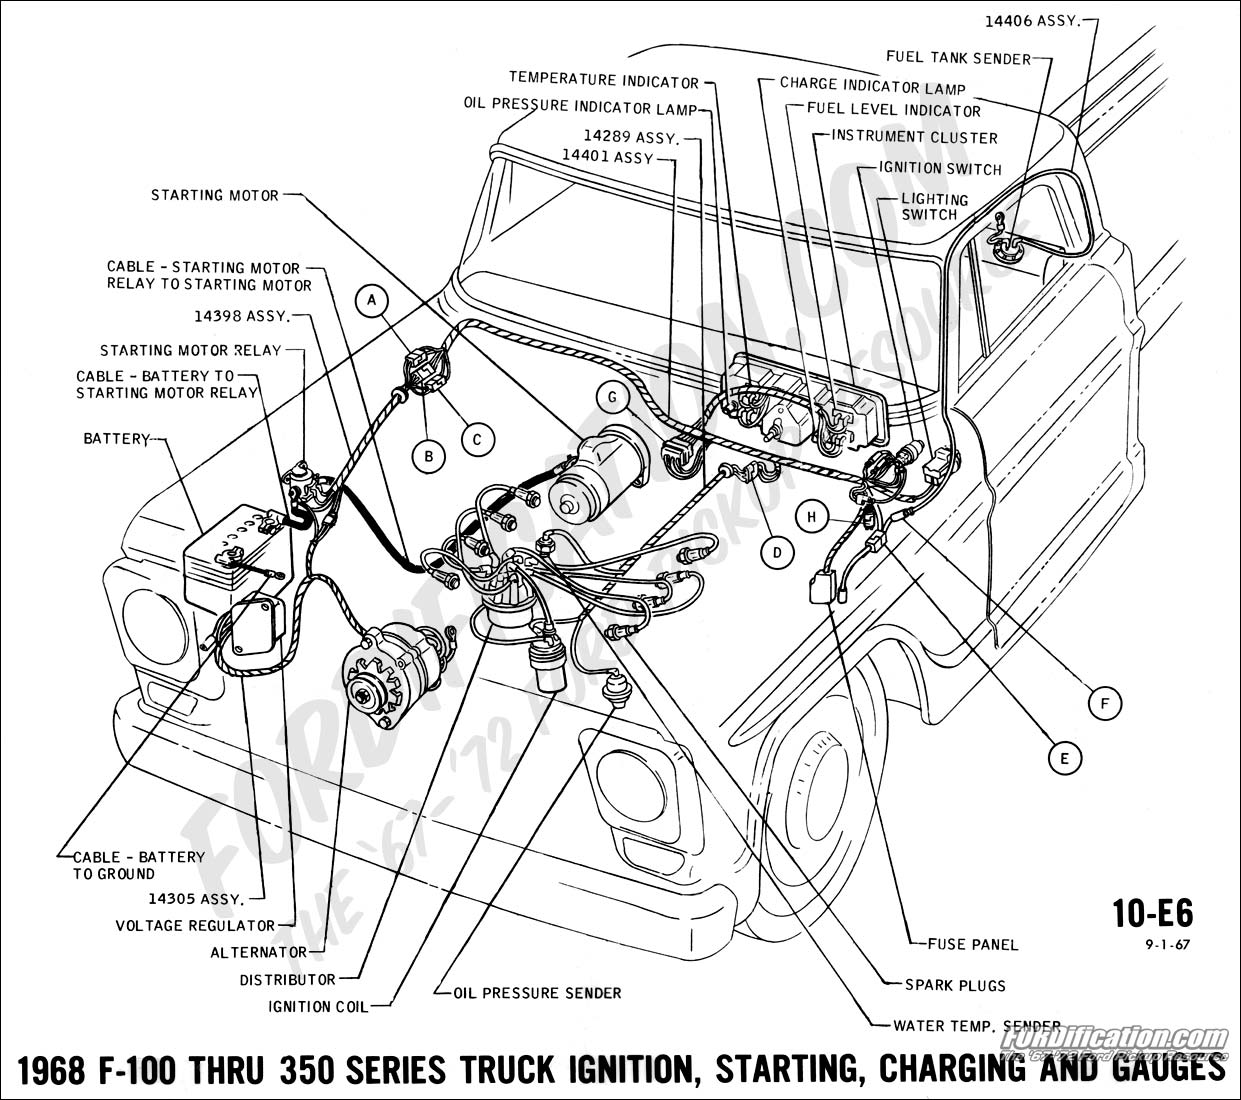 2001 Ford F 250 Starter Solenoid Diagram Wiring Will Be A 96 Ranger Truck Technical Drawings And Schematics Section H 95